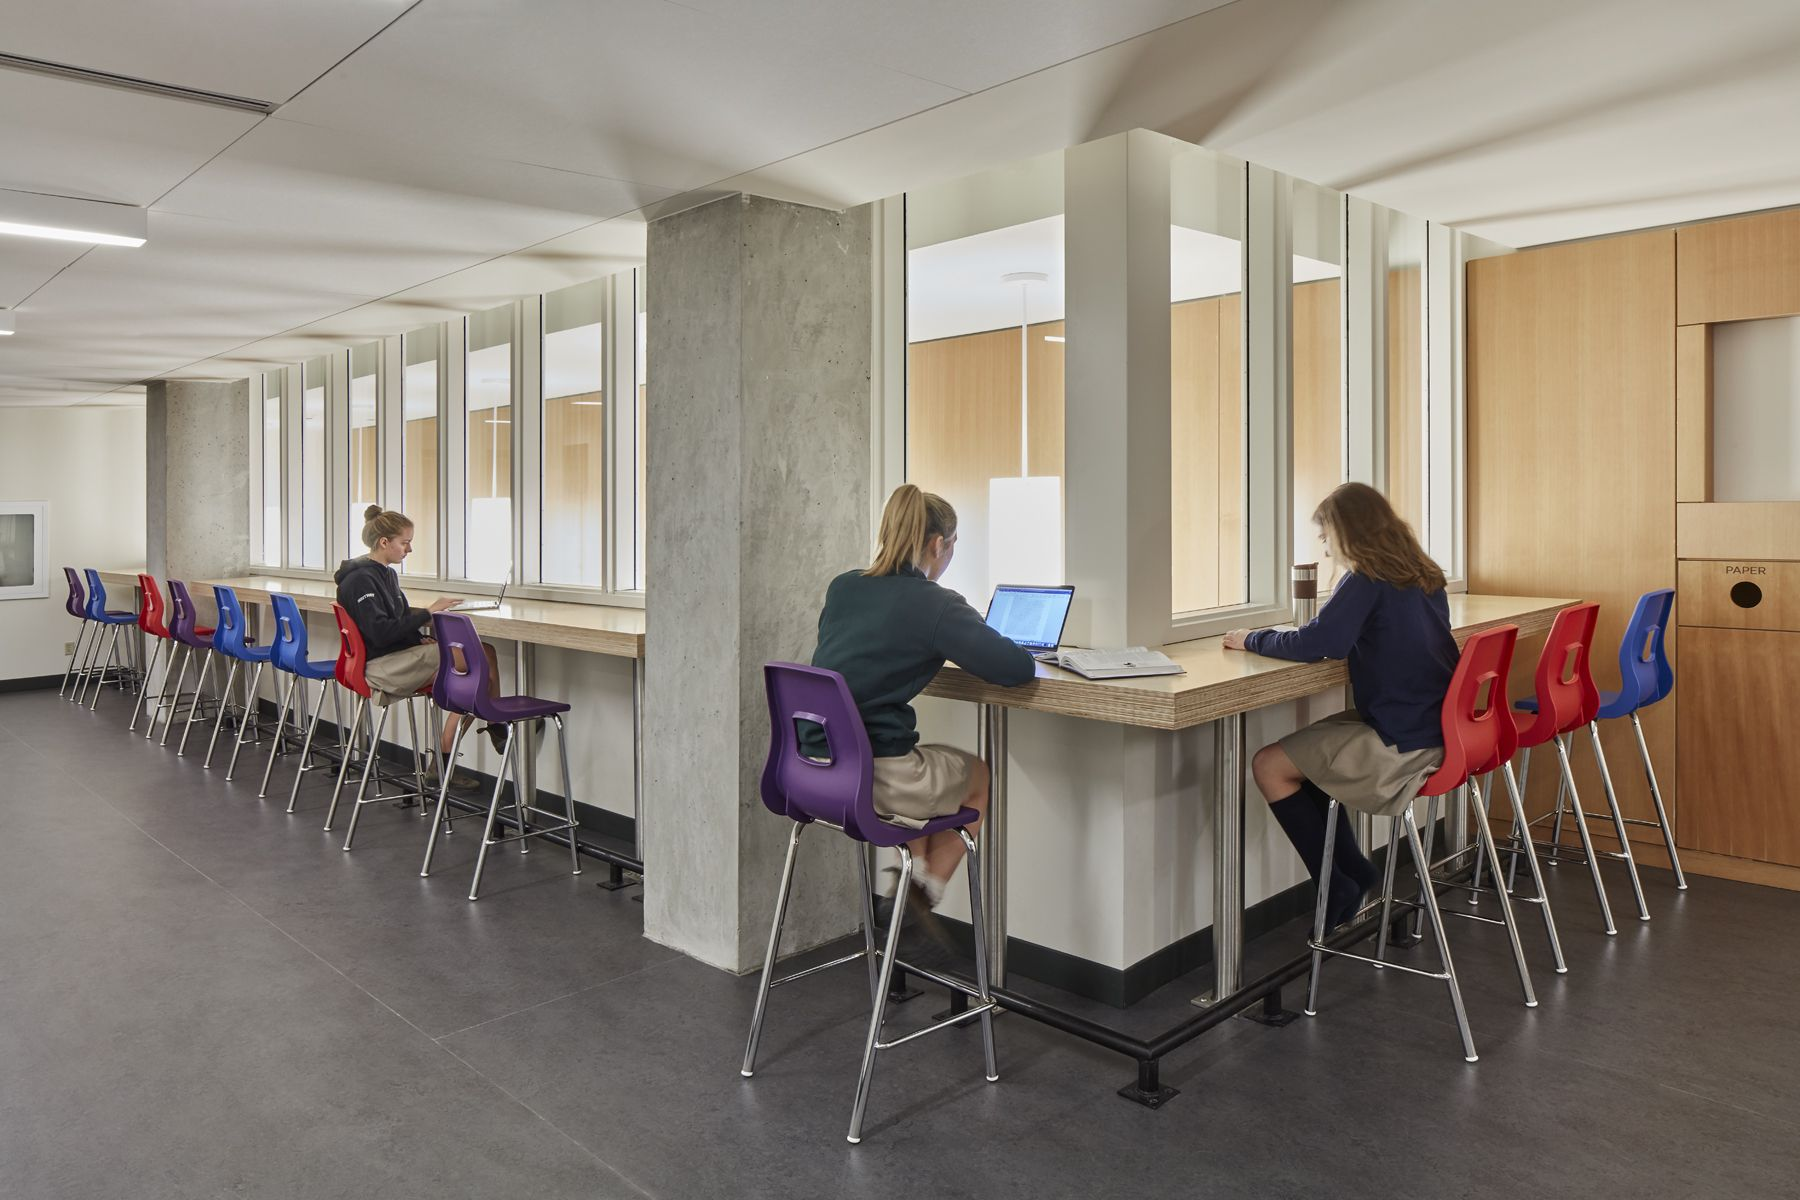 Our expanded and renovated building includes a generous mix of quiet work spaces and social spaces.